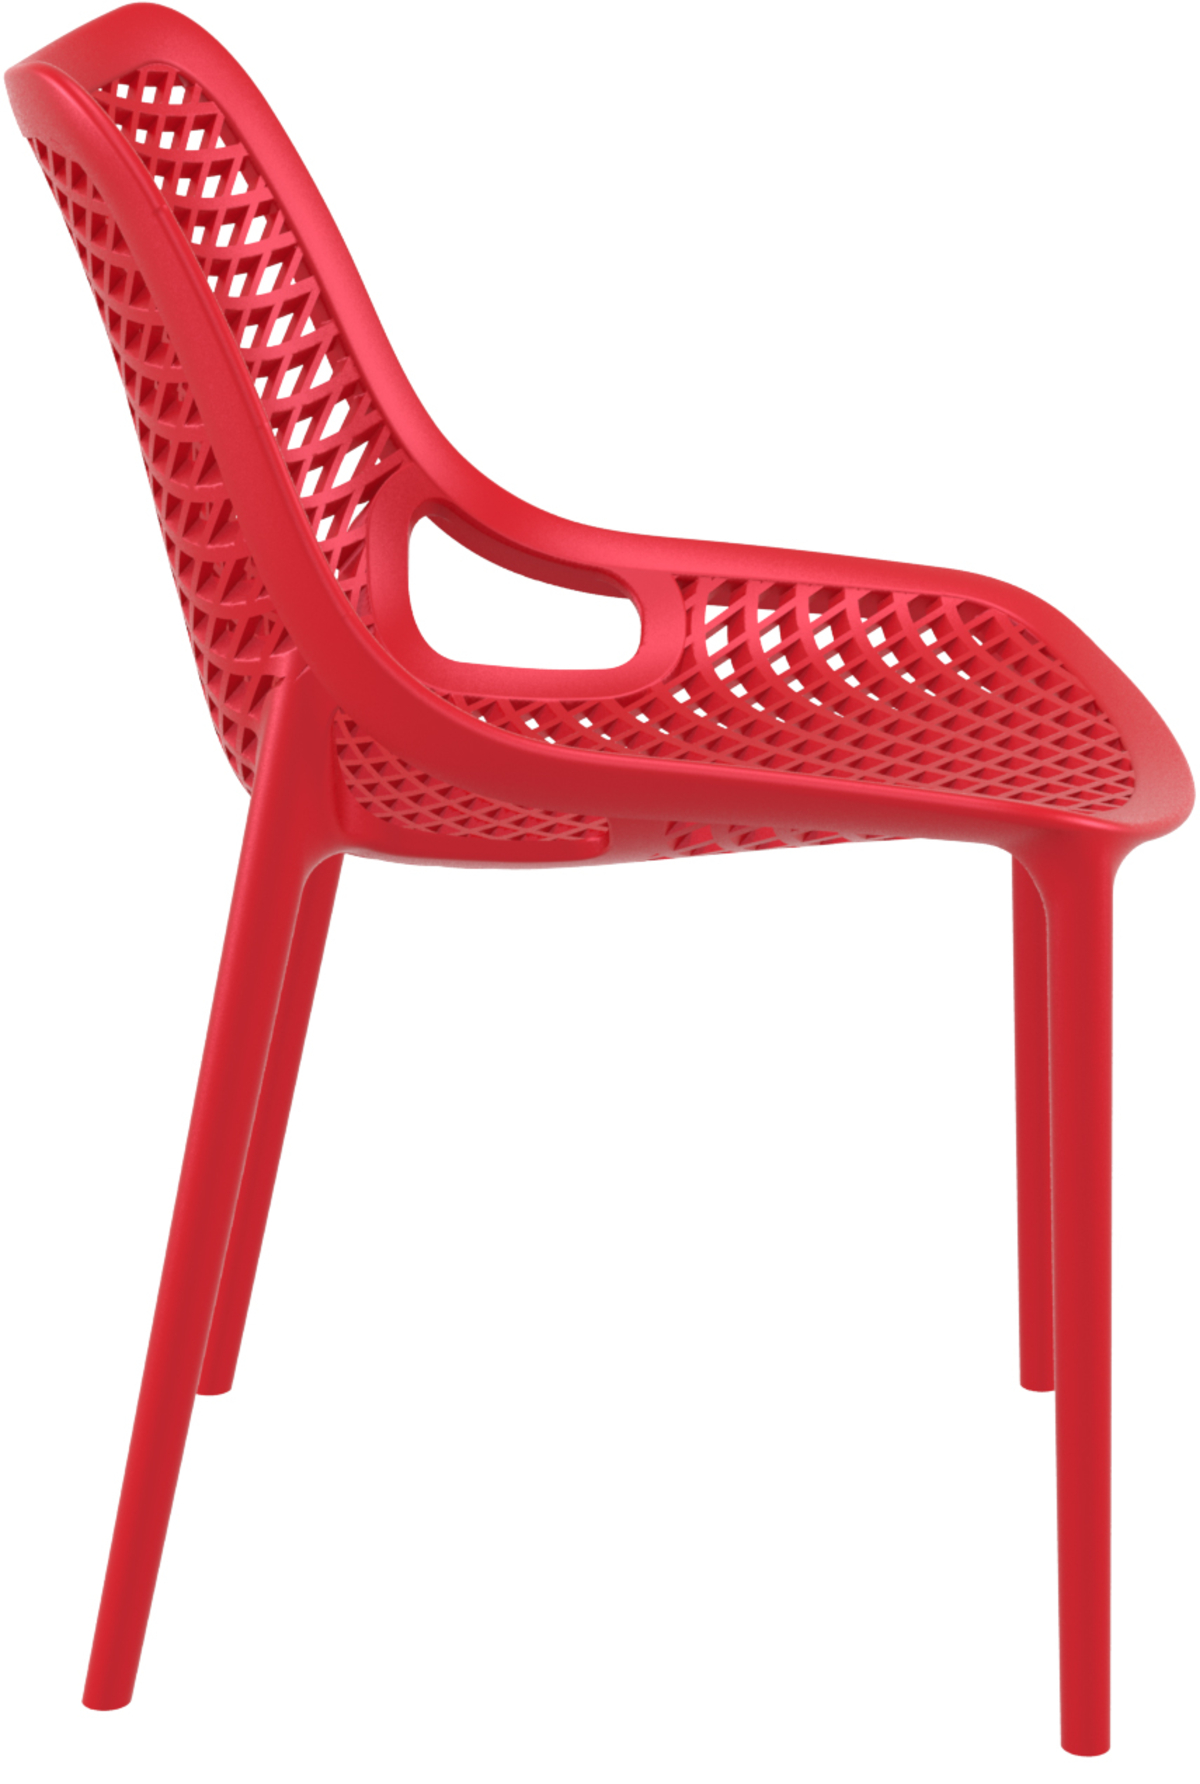 Chaise rouge 50 cm Air